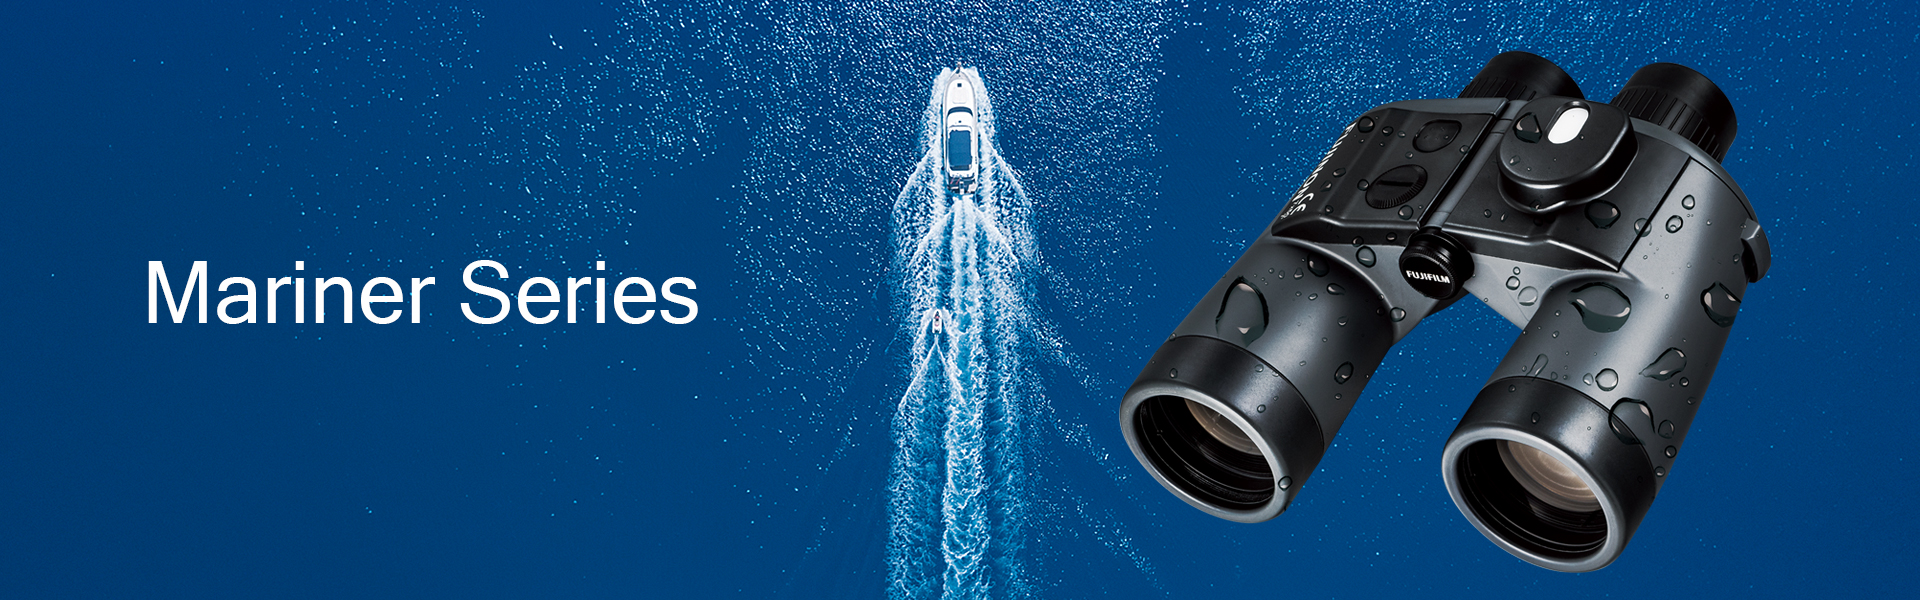 [photo] Black binoculars in front of background of aerial view of white boat cruising through deep blue ocean water